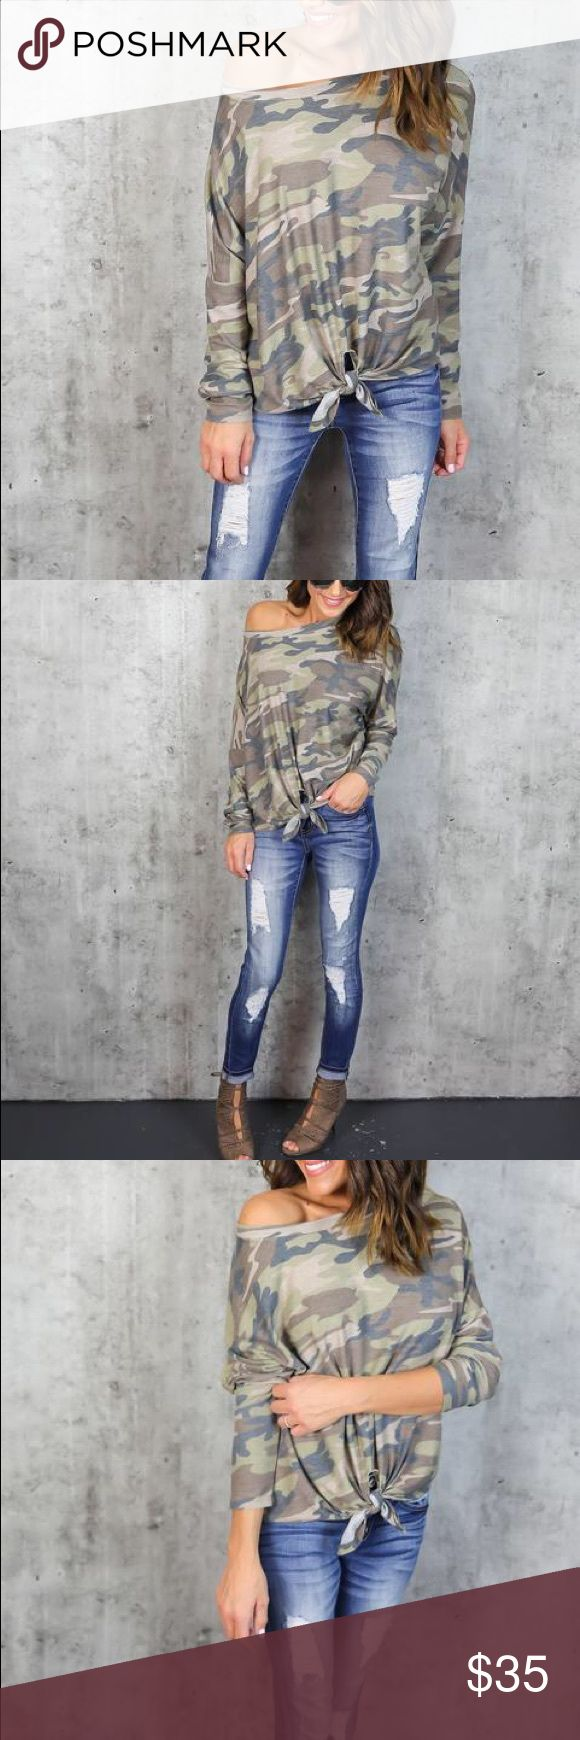 """Camo print front knot sweatshirt pullover top This statement piece is ultra soft and comfortable in dolman style ! The knot in the front can be tied to your preference and defines this cute piece to keep in on trend and in style! Wear this with joggers on the weekendor mix it up with bold accessories for a more elevated look. Made in the US! Length: Shoulder to hem length on a size small measures 22""""Runs: True to sizeCare:Hand Wash Cold/ Gentle Cycle Sweatshirt is 85% Polyester, 10%…"""